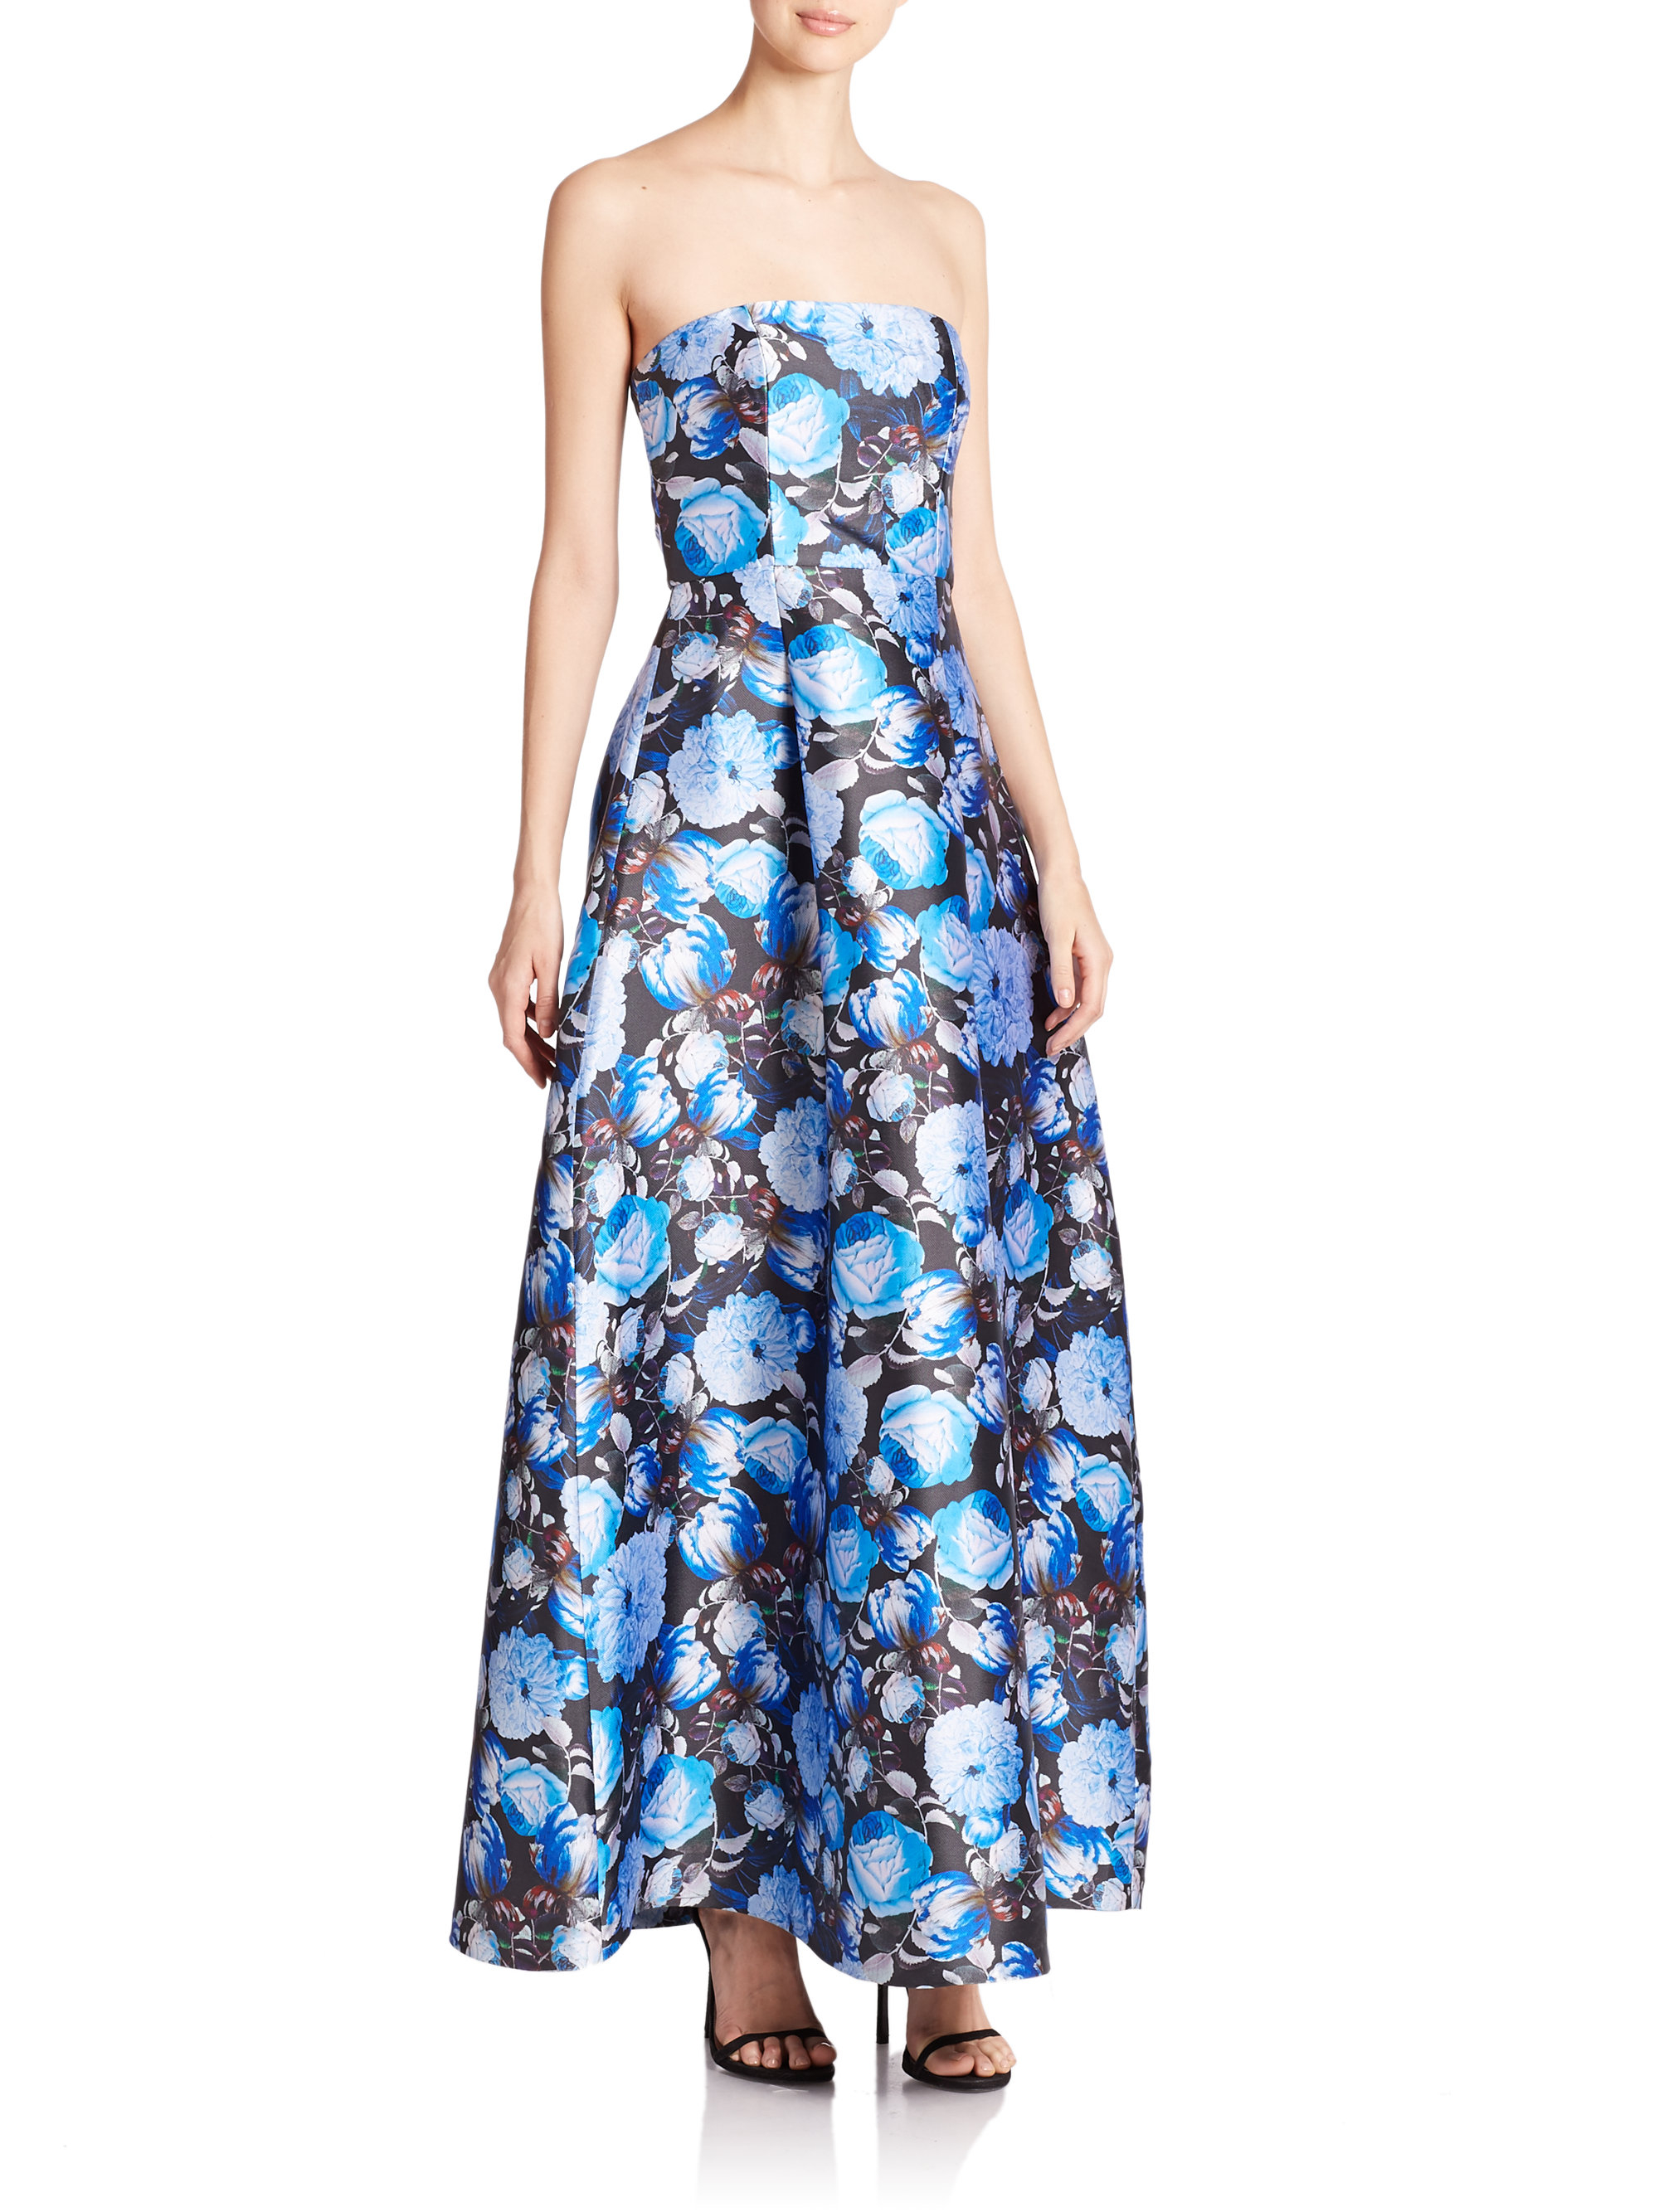 Lyst - Sachin & Babi Strapless Floral-print Ball Gown in Blue